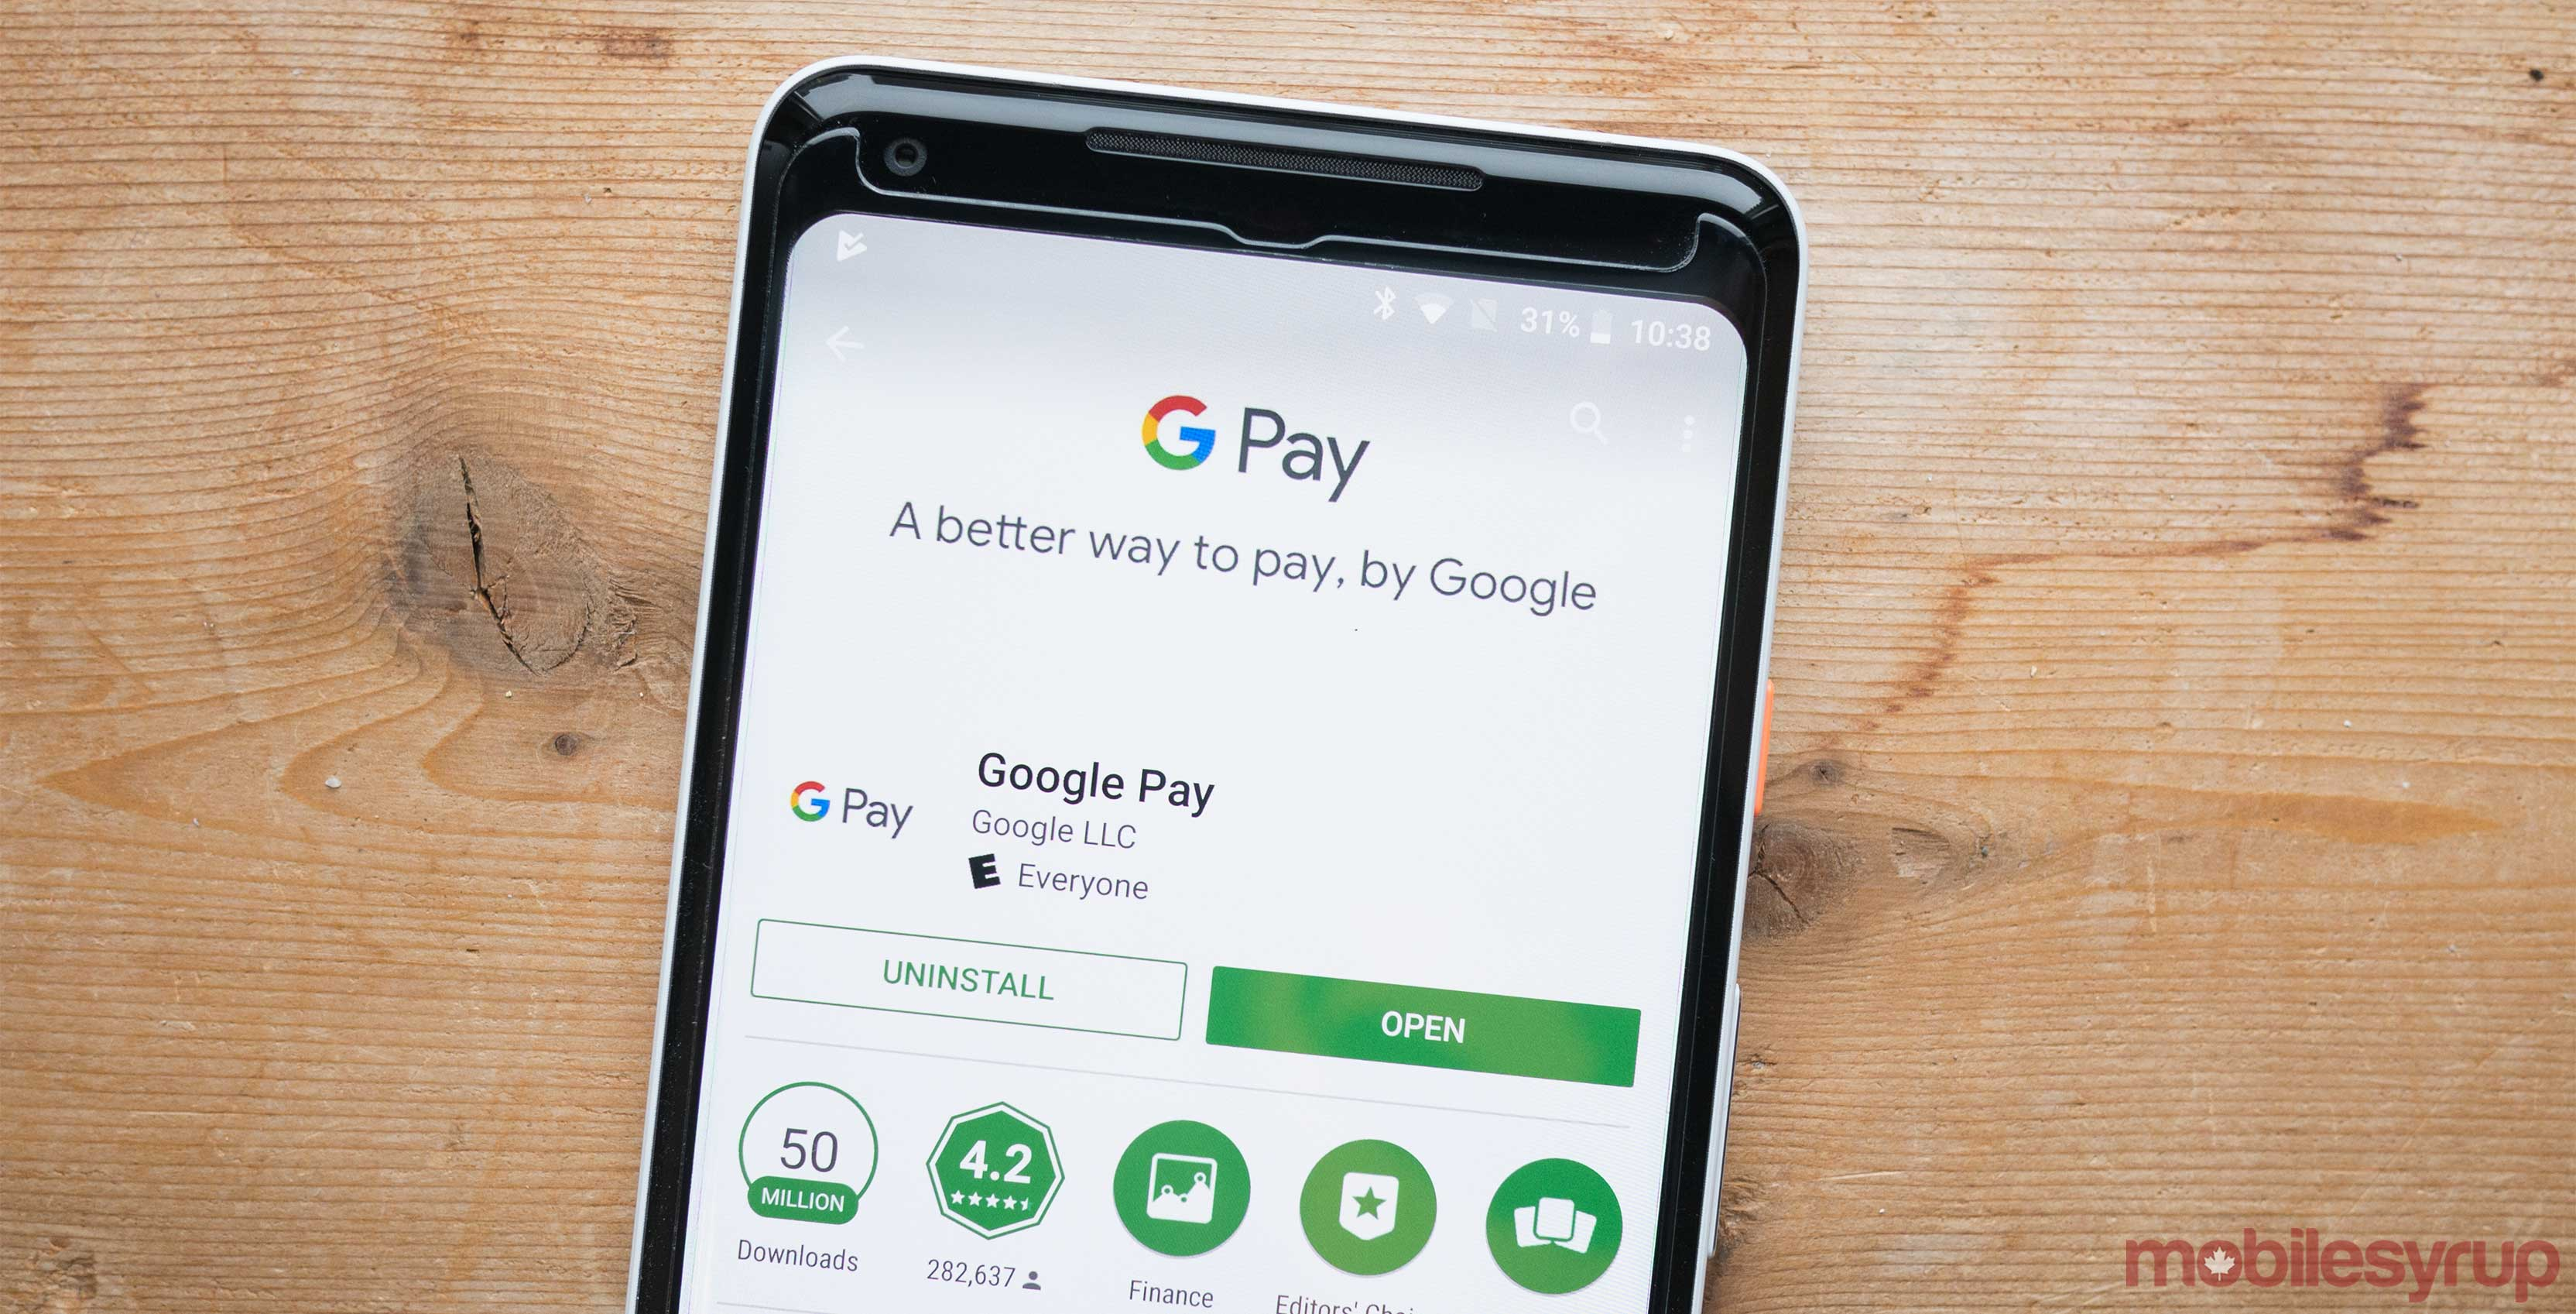 Google Pay on Android phone